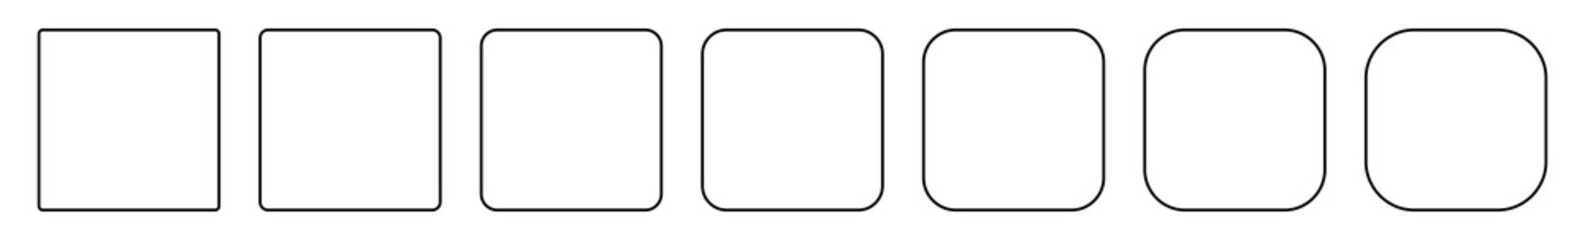 Square Icon Black | Round Squares | Foursquare Symbol | Frame Logo | Button Sign | Isolated | Variations Wall mural